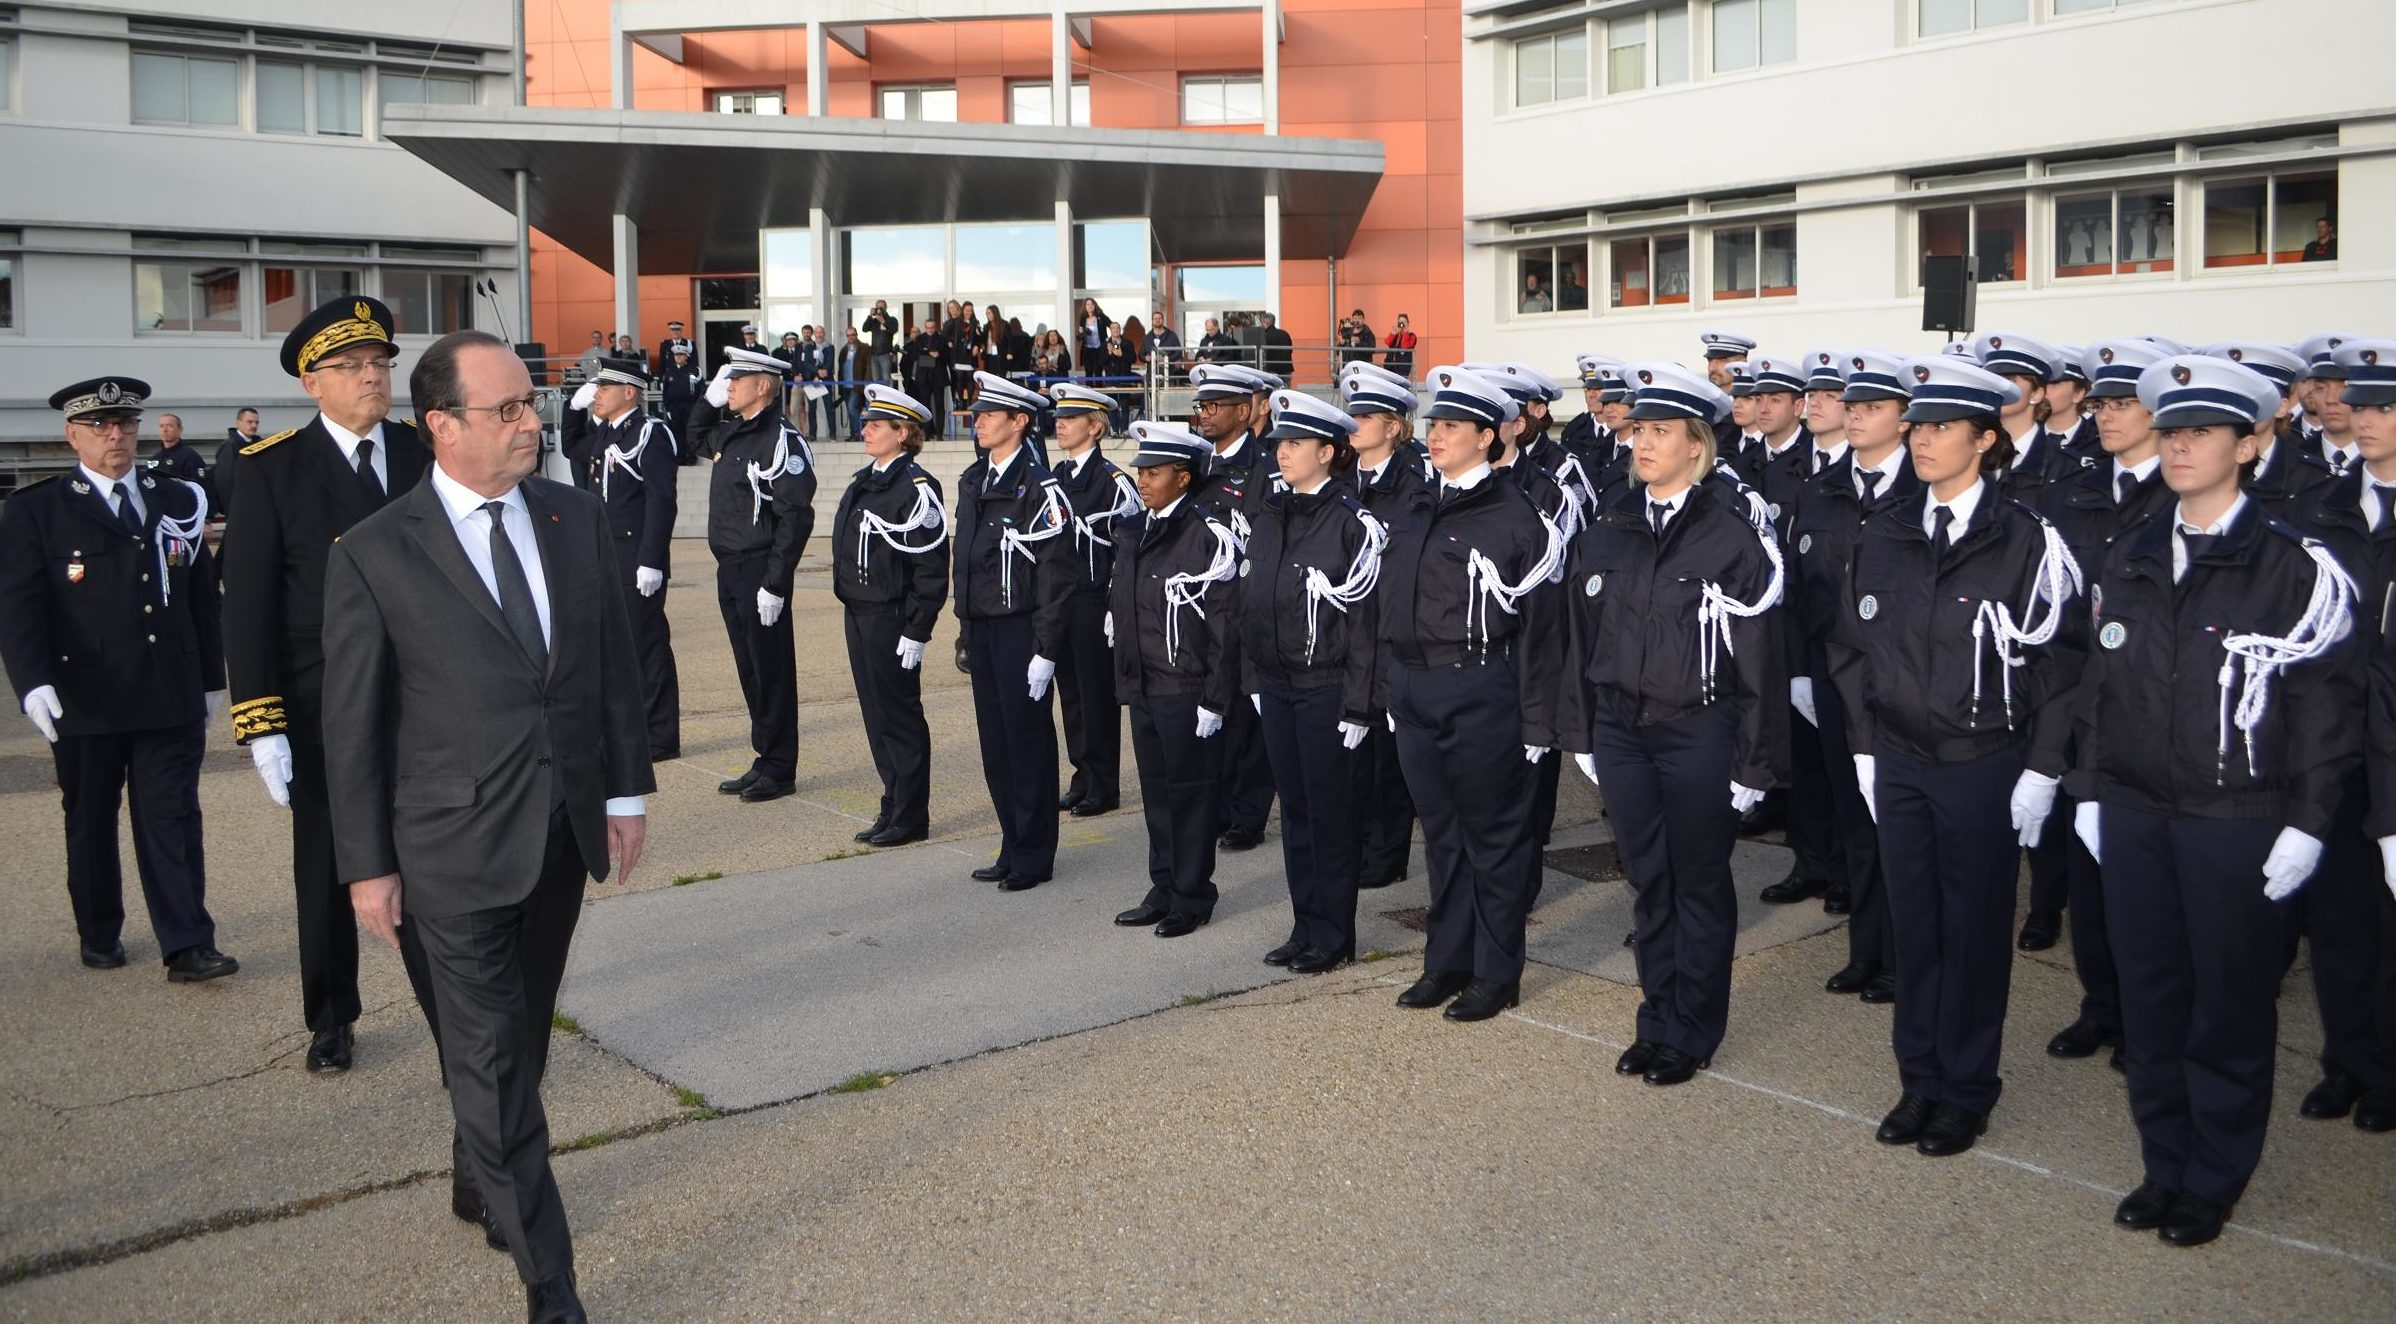 Photo of NÎMES François Hollande au chevet des policiers nîmois